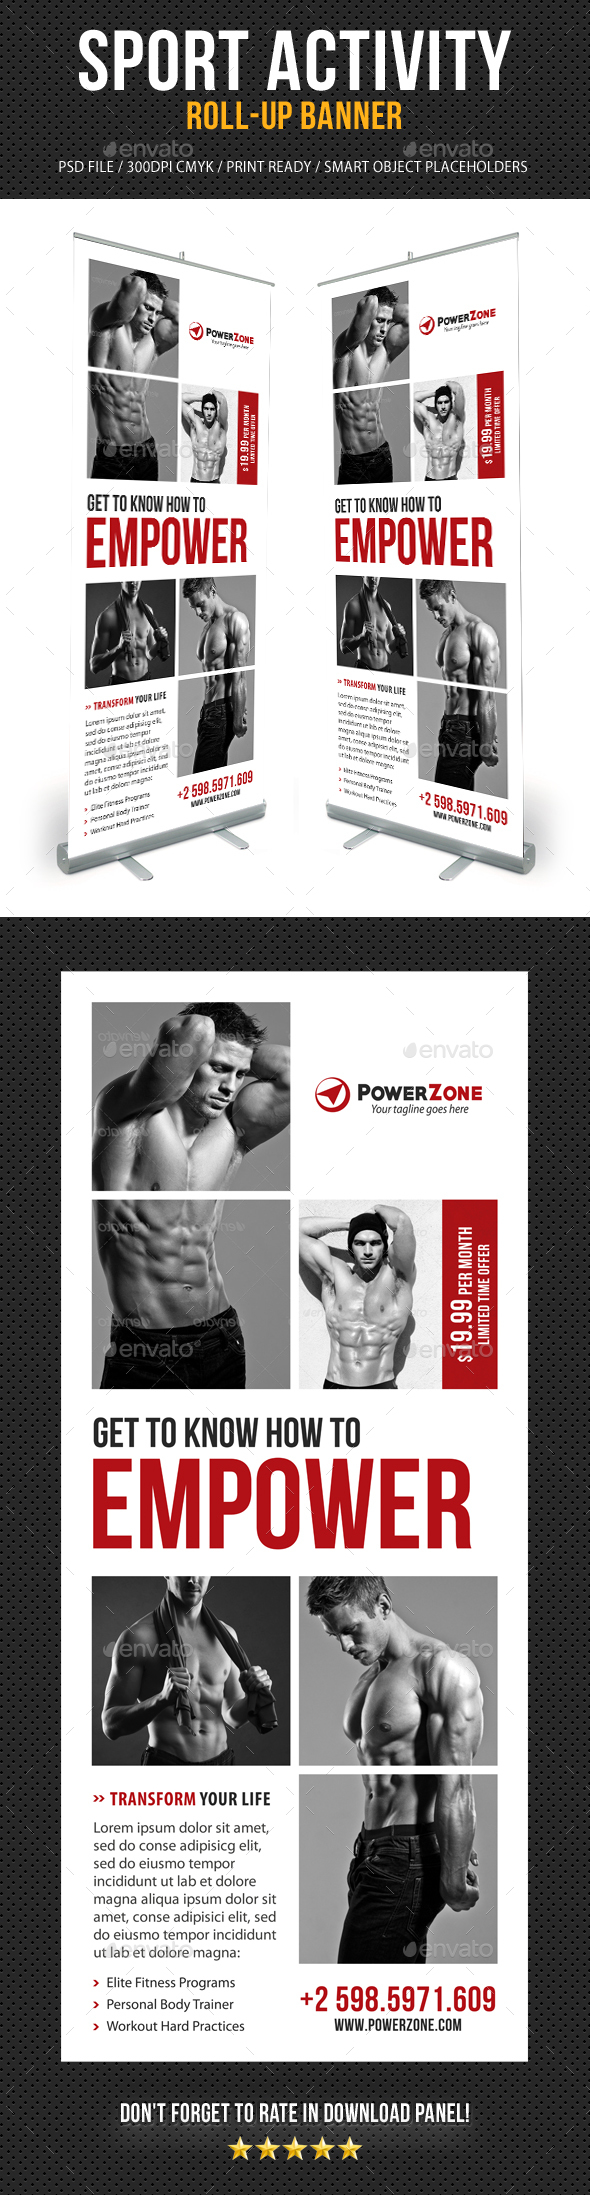 Gym Banner Graphics, Designs & Templates from GraphicRiver